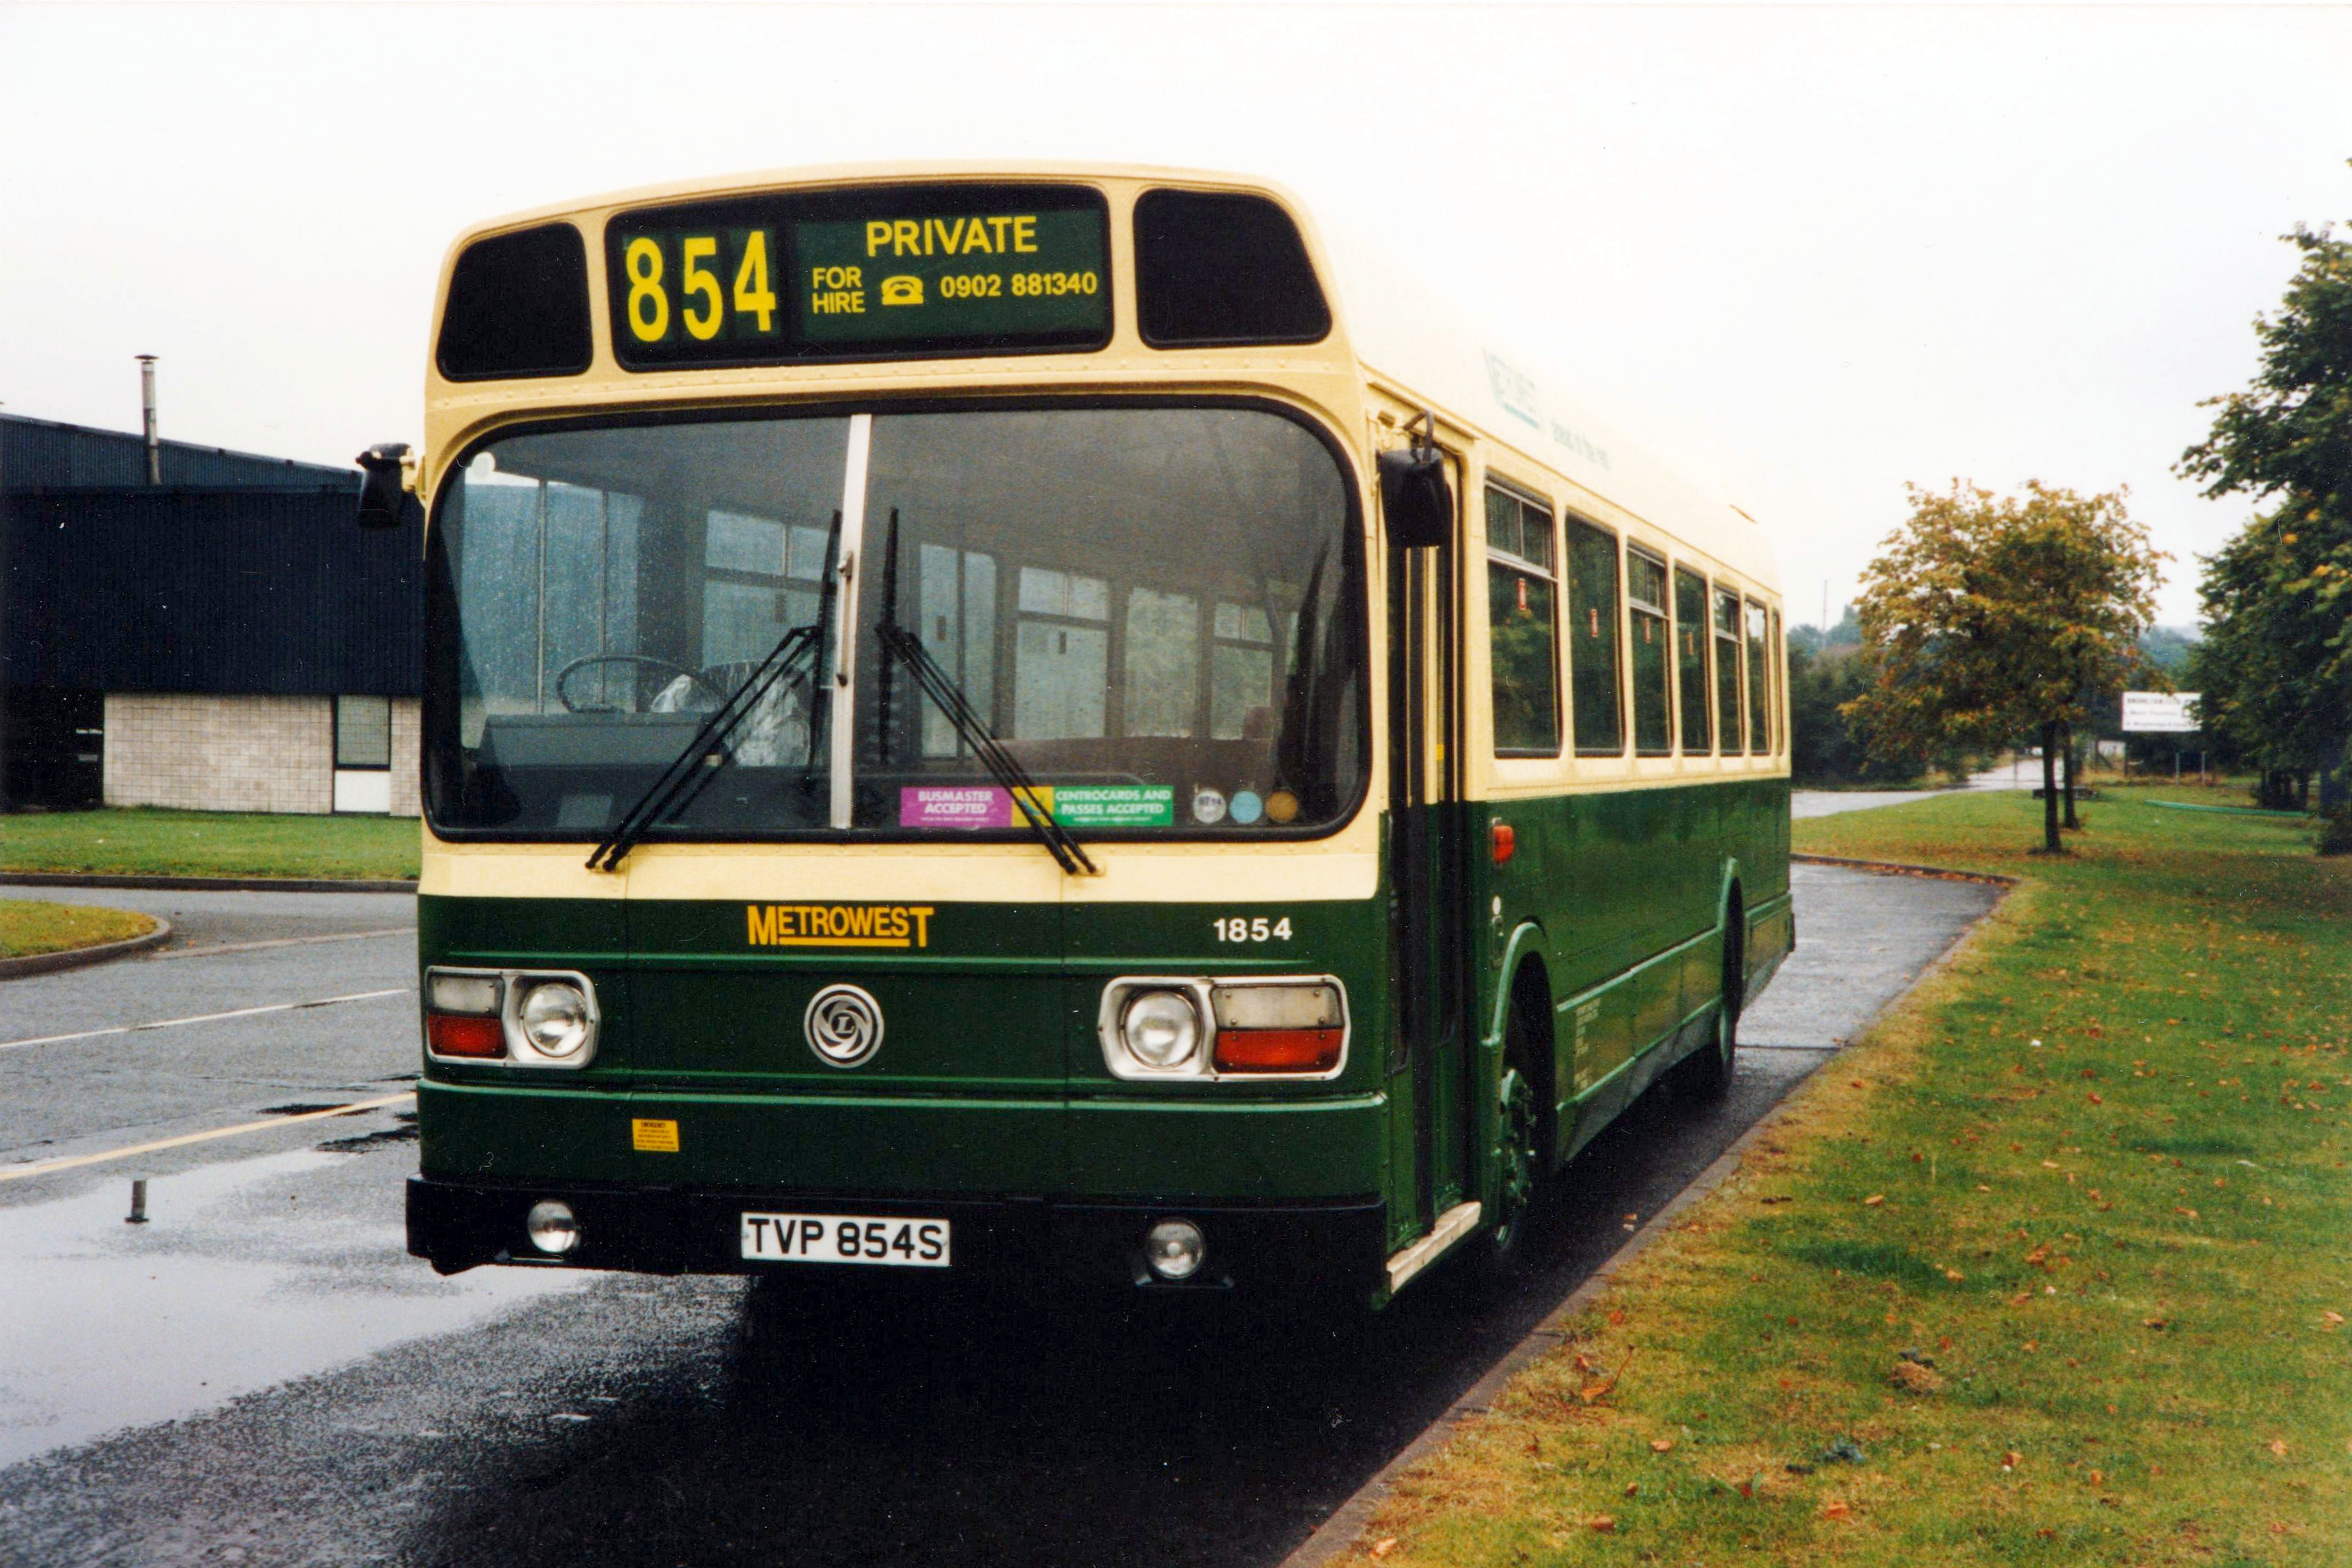 DP National 1854 on 22 Aug 1993 003.jpg